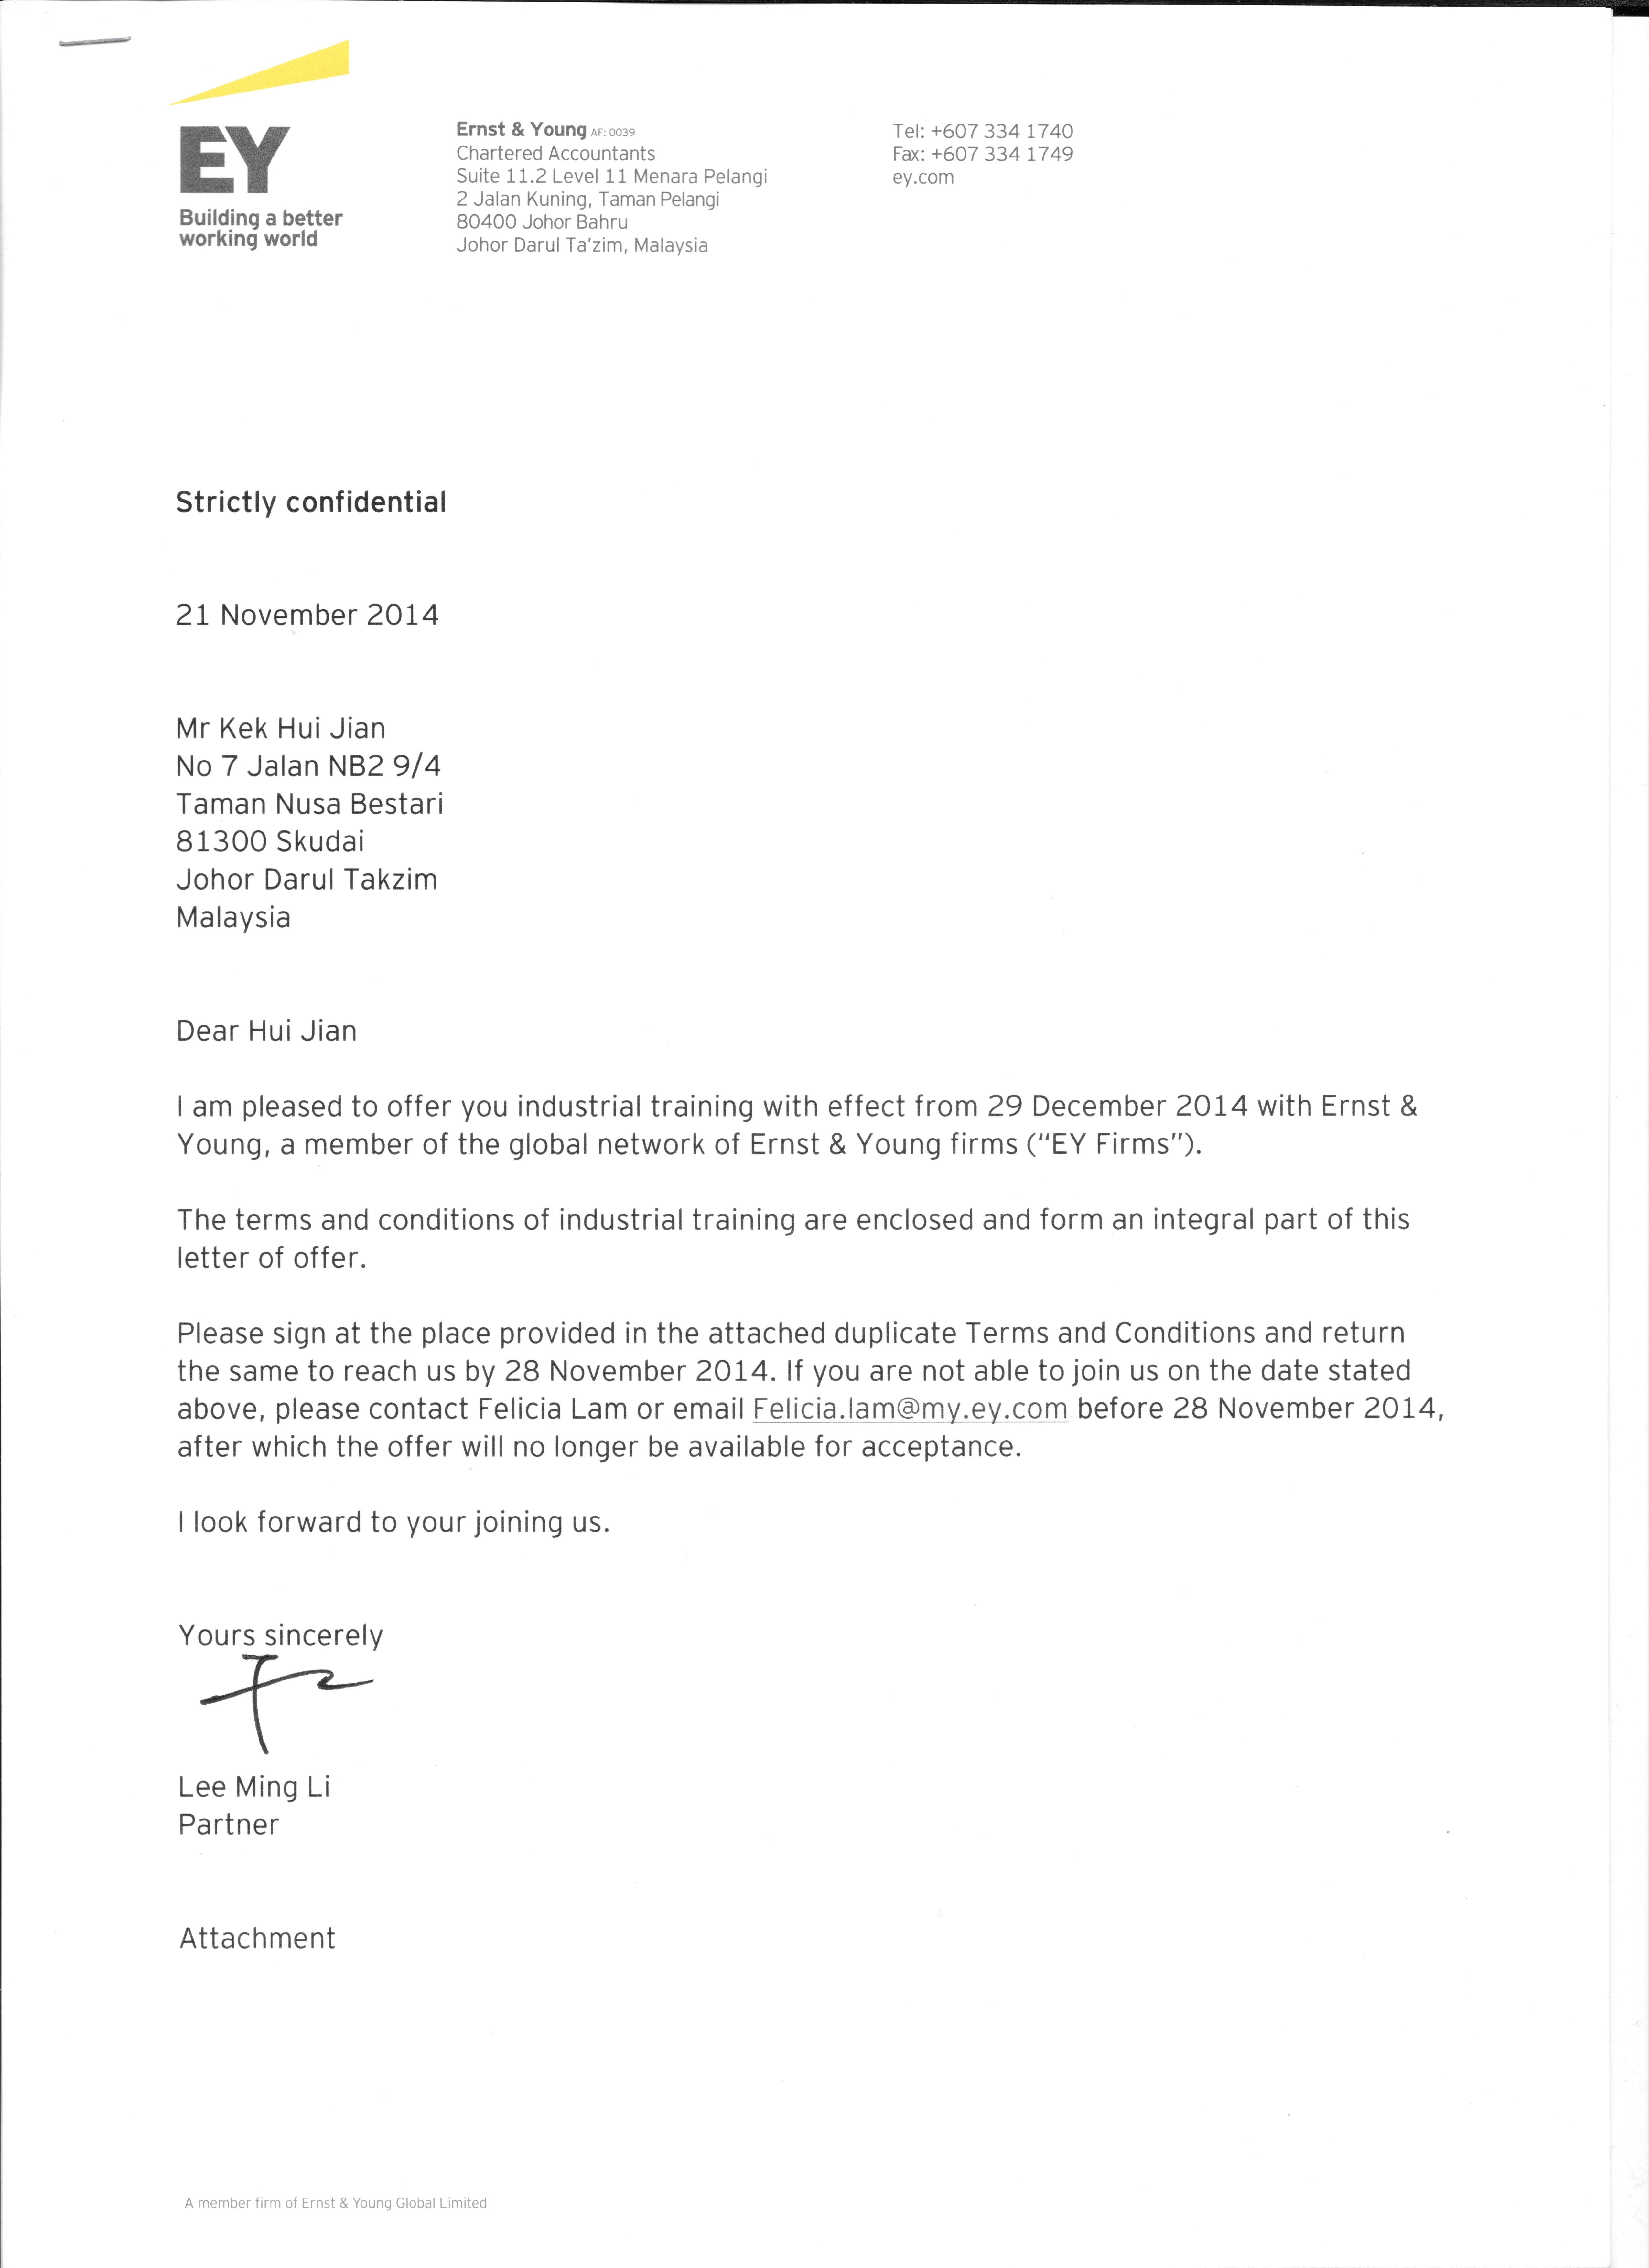 Appointment Letter Request behind the wheel training orange – Appointment Letter